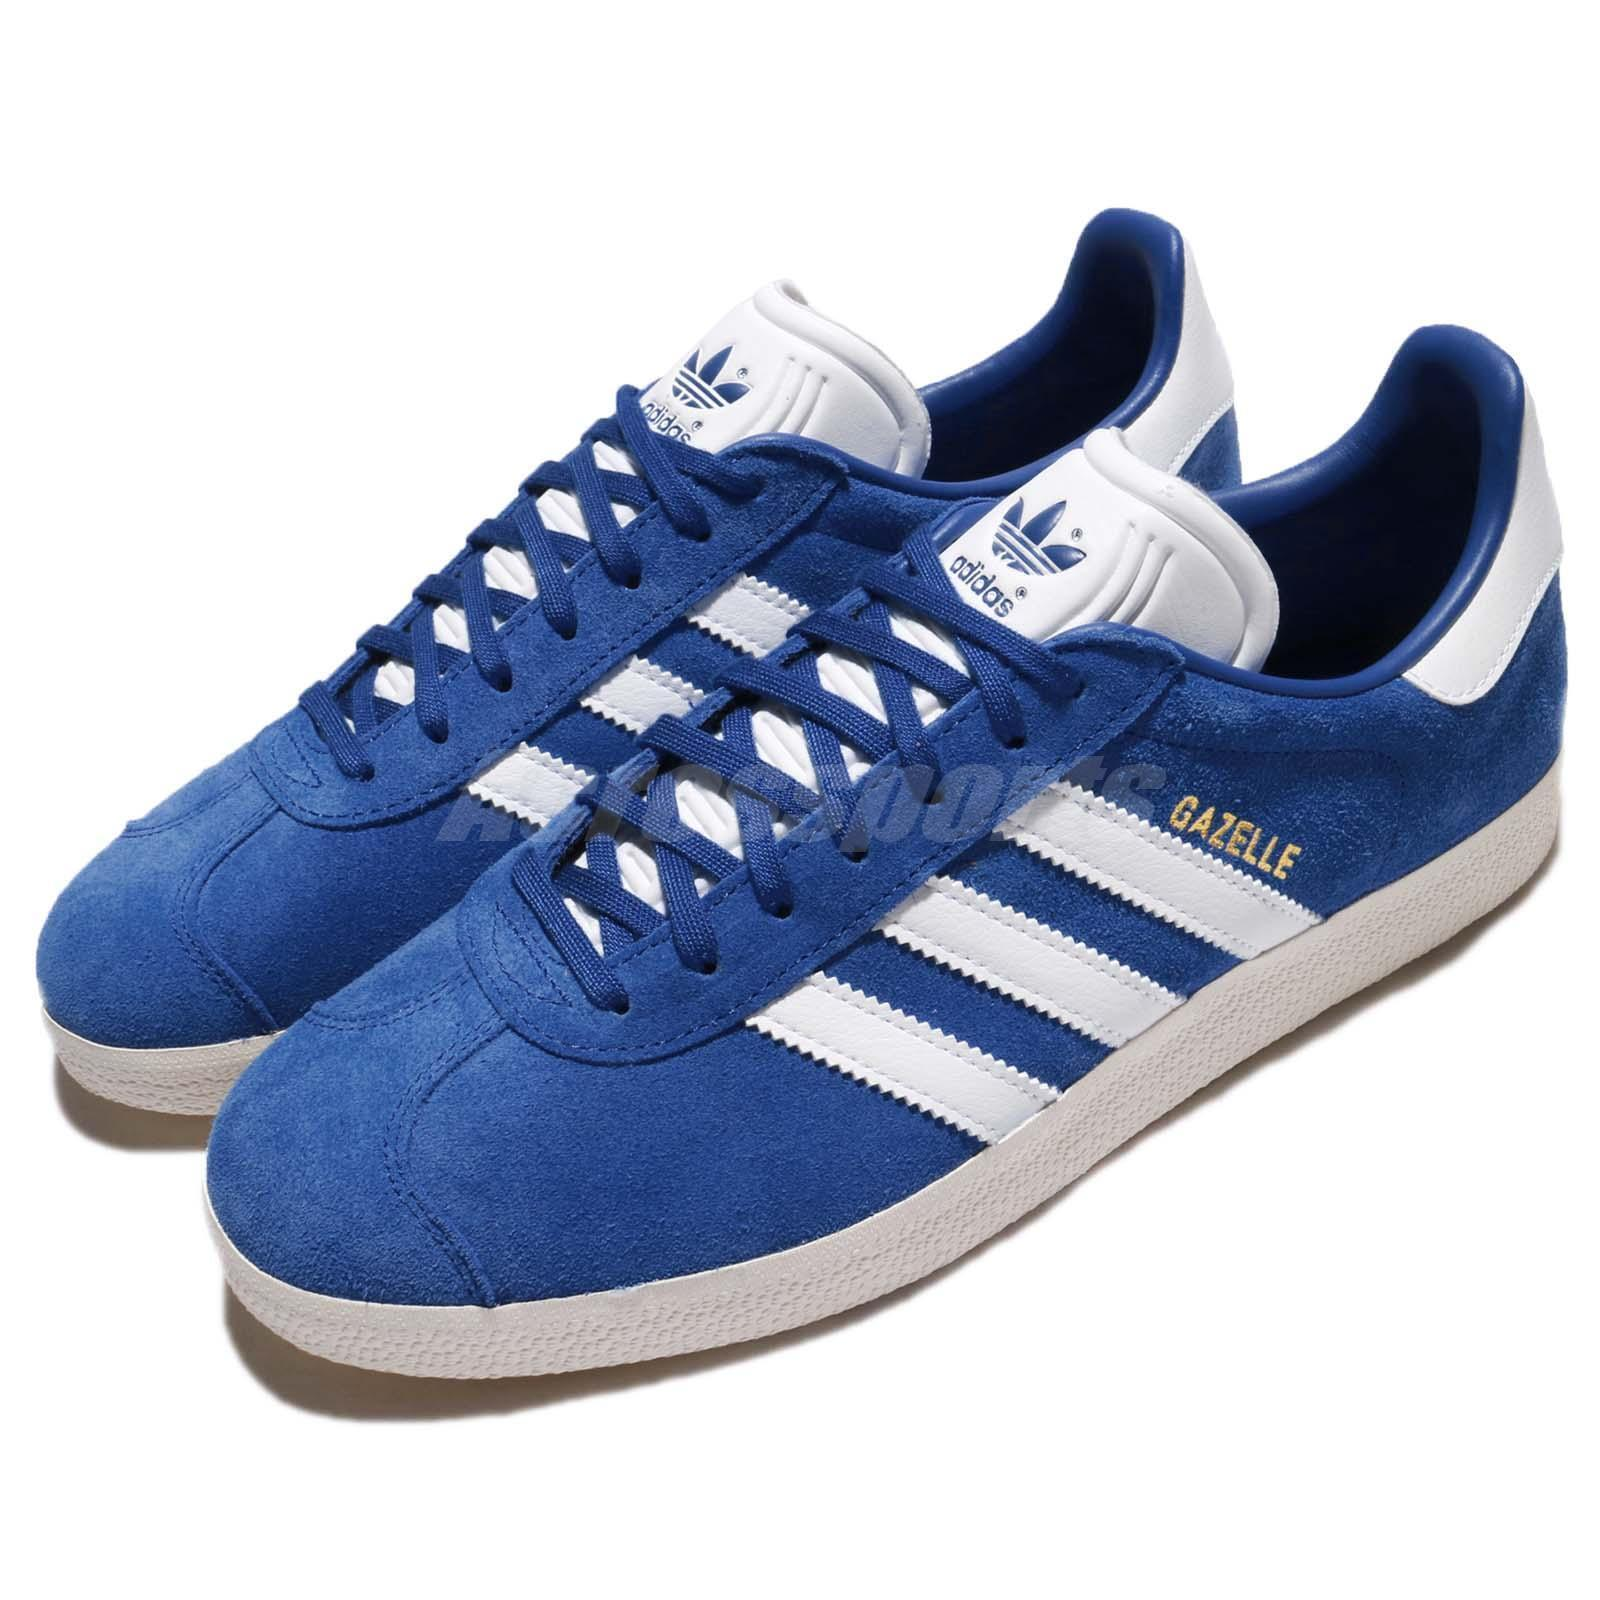 ADIDAS ORIGINALS X_PLR CASUAL homme SCARLET - GUM NEW REFLECTIVE 3 STRIPES Taille